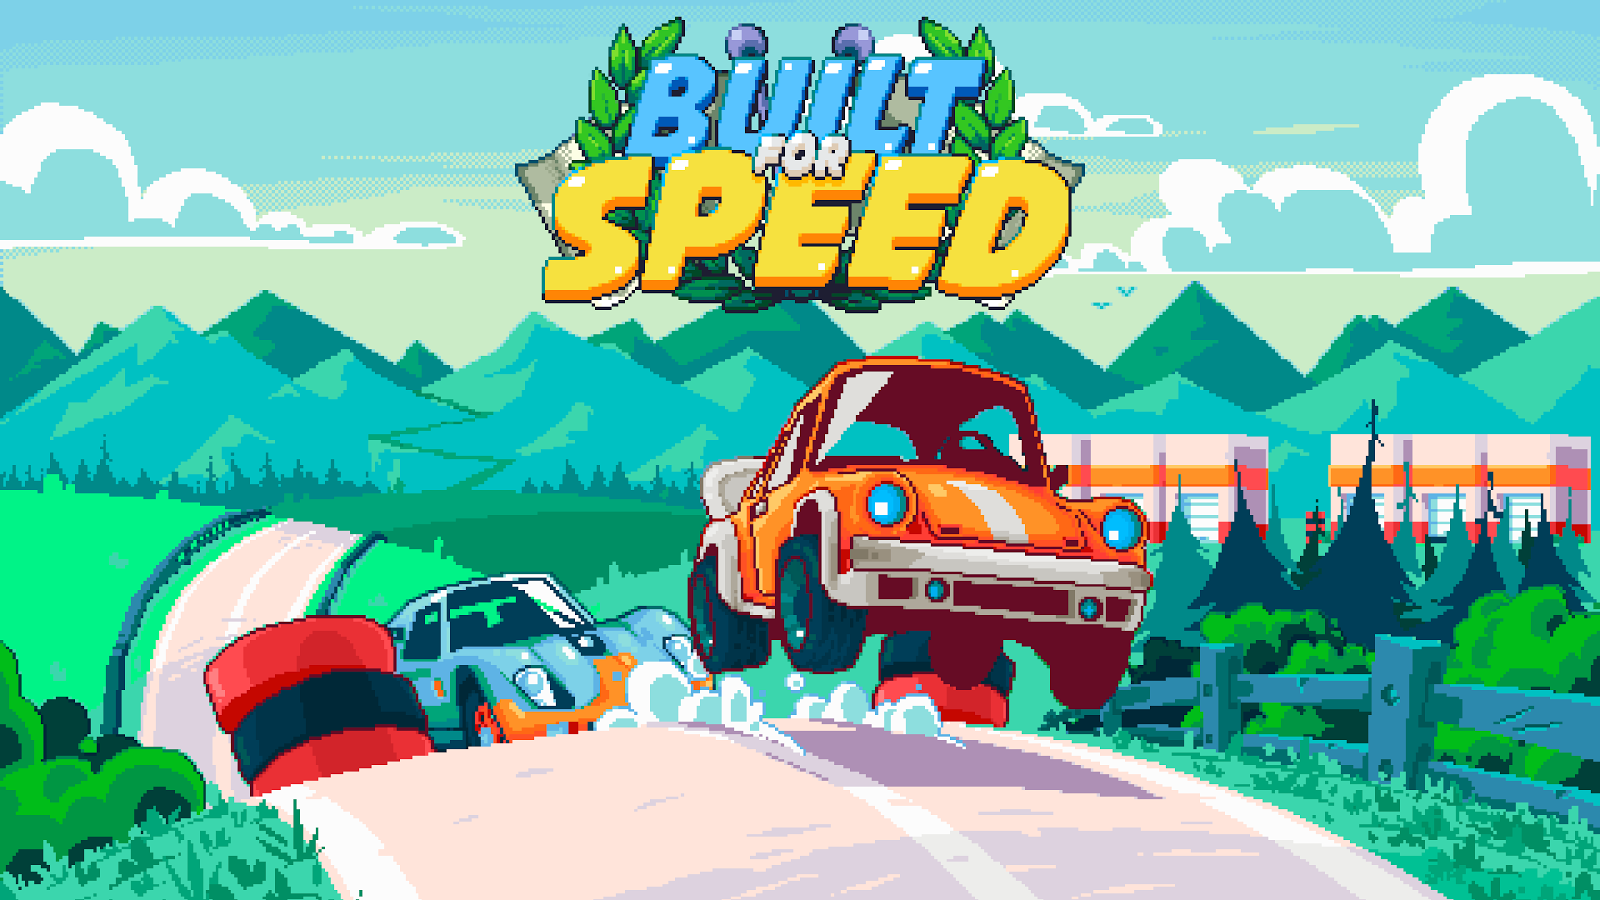 Built for Speed Screenshot 14